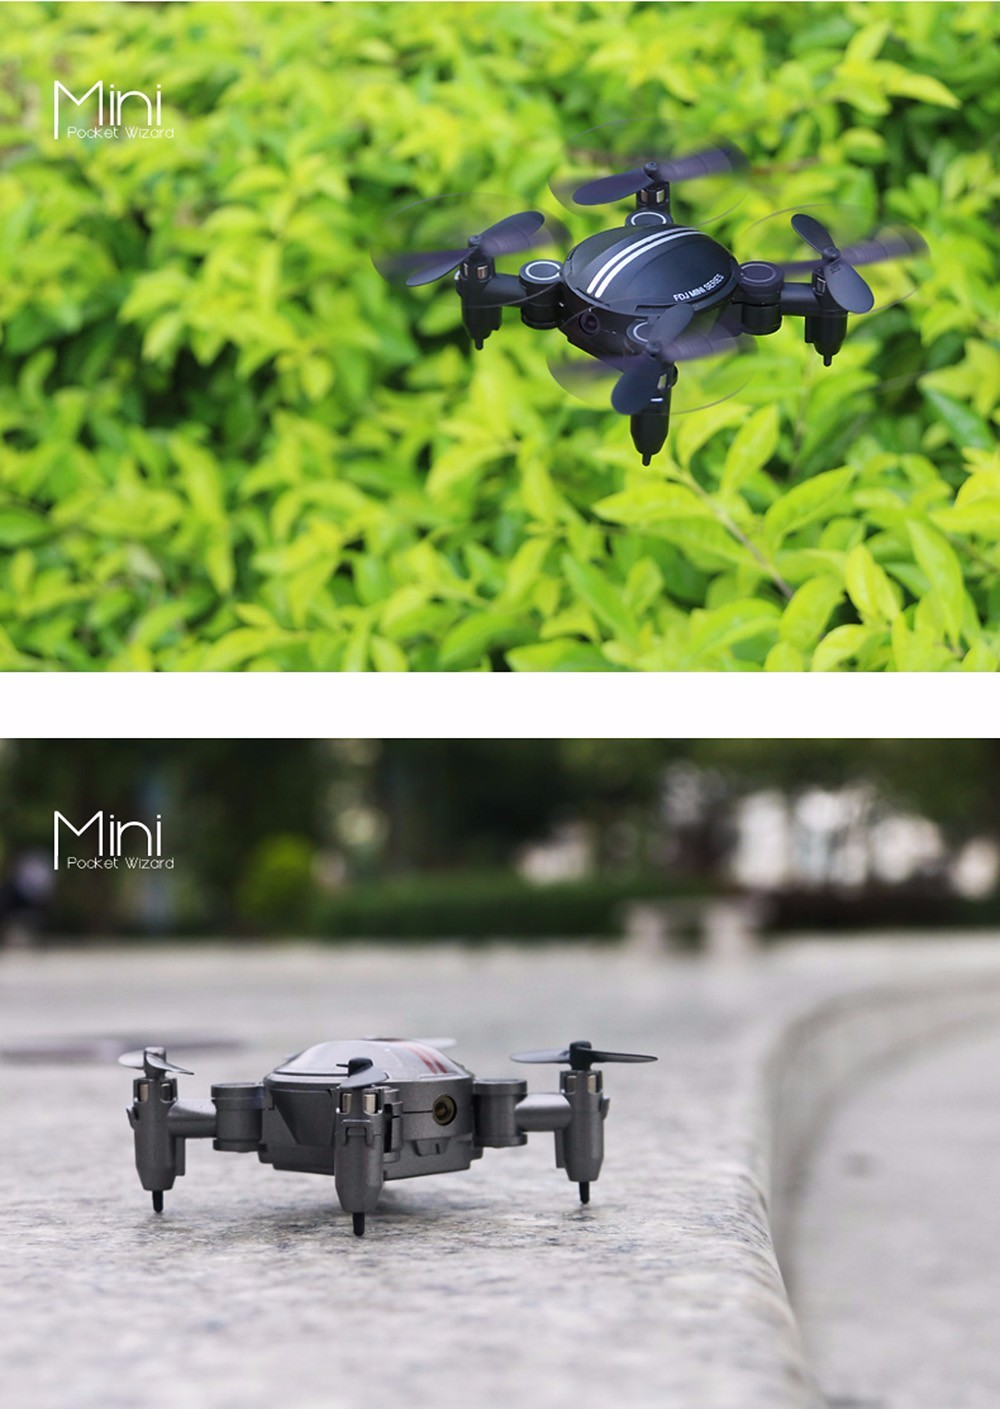 DWI Dowellin 2.4Ghz transmitter 6 Axis mini pocket selfie drone with hd camera